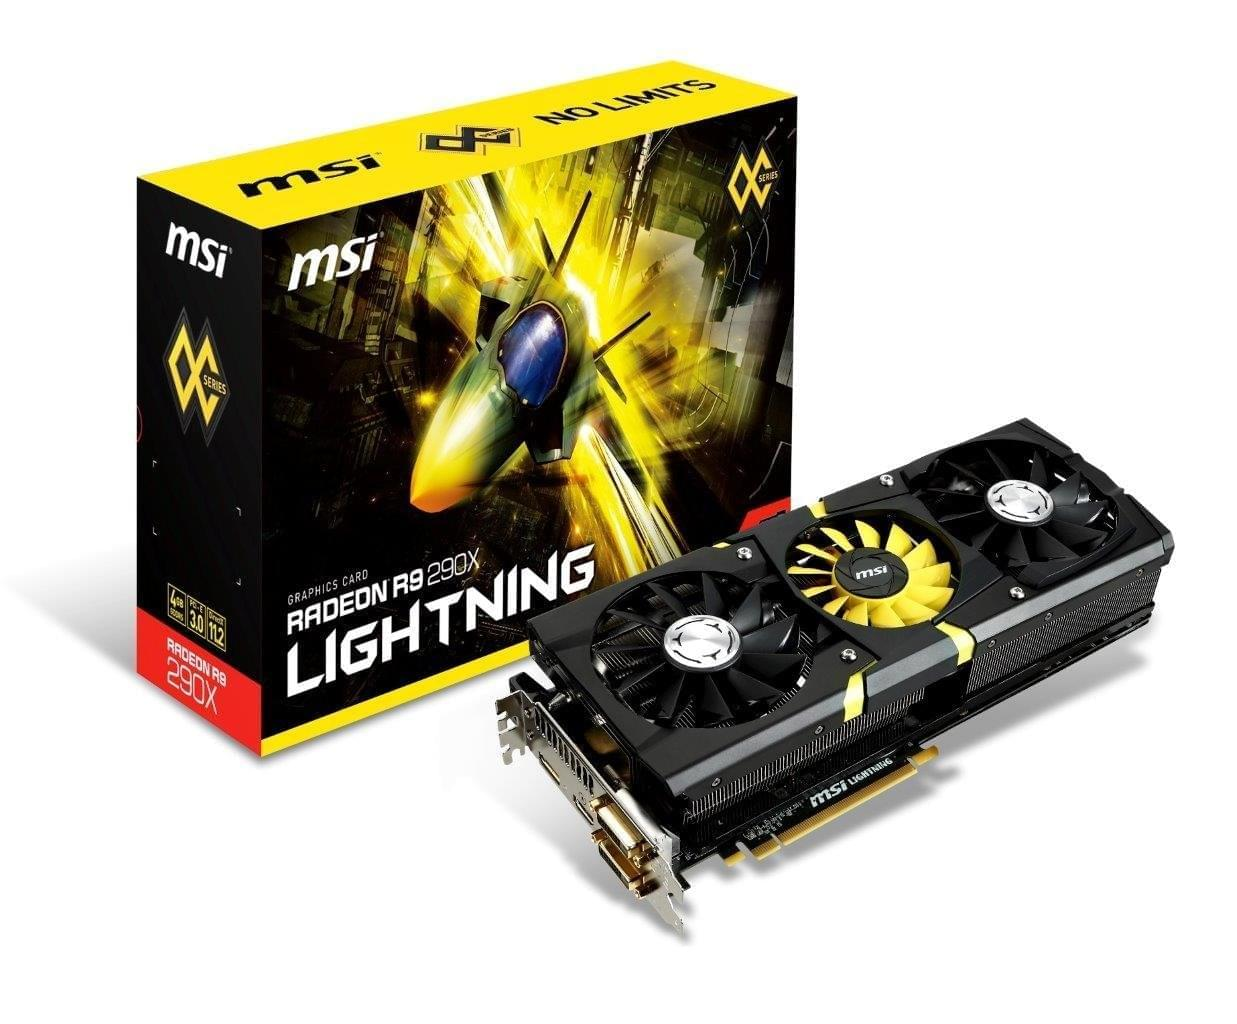 MSI R9 290X Lightning 4Go - Carte graphique MSI - Cybertek.fr - 0